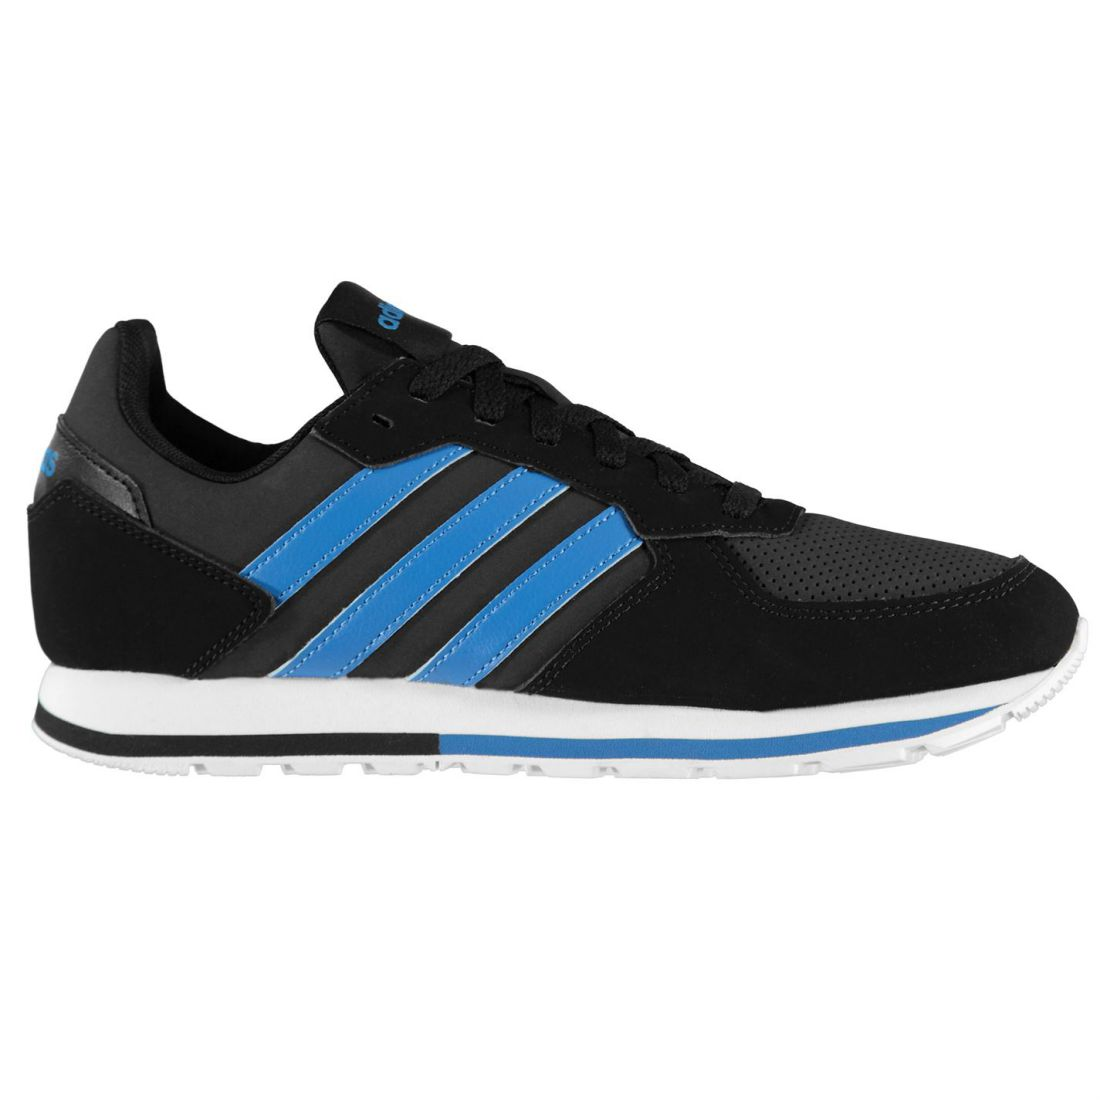 1cd61cd0807d04 ... Adidas 8K Nubuck Turnschuhe Mens Gents Runners Laces Fastened Padded  Padded Padded Ankle Collar c649ef ...